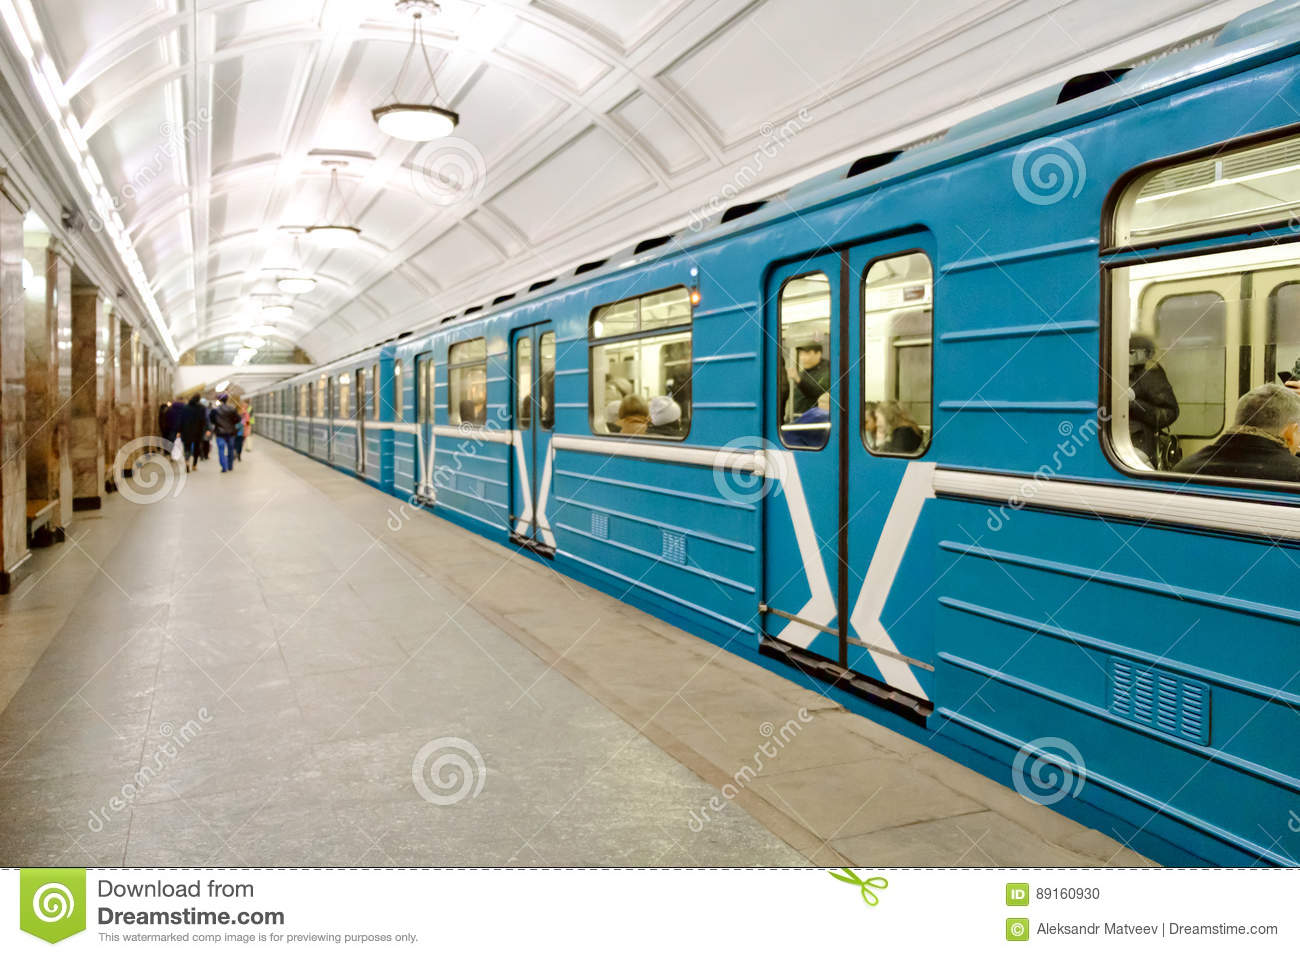 Wagon train on Moscow underground metro station